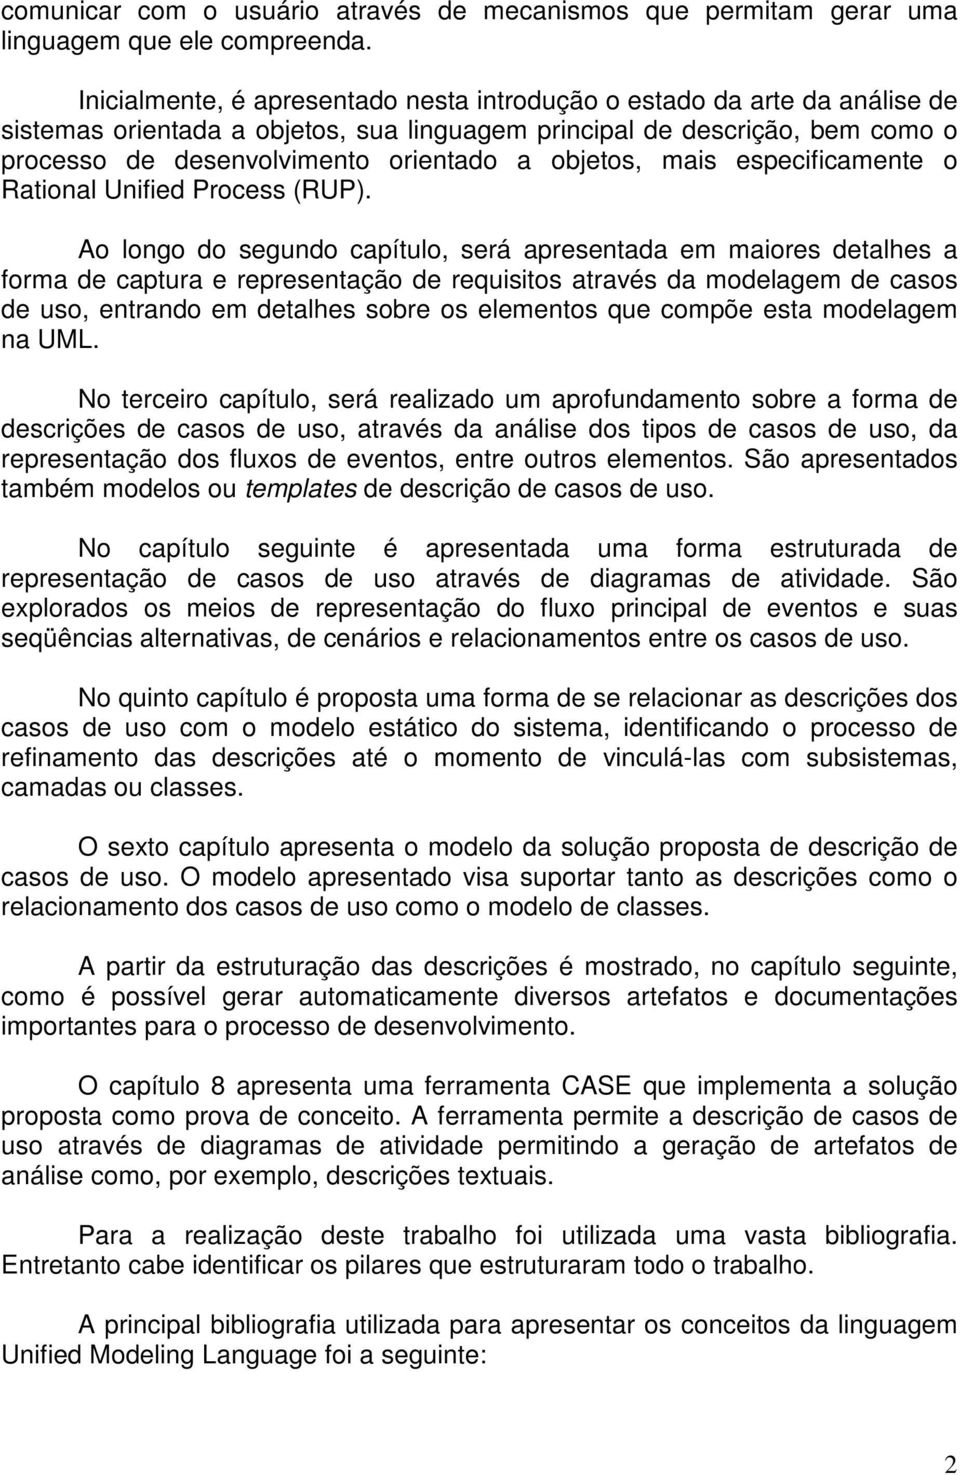 objetos, mais especificamente o Rational Unified Process (RUP).